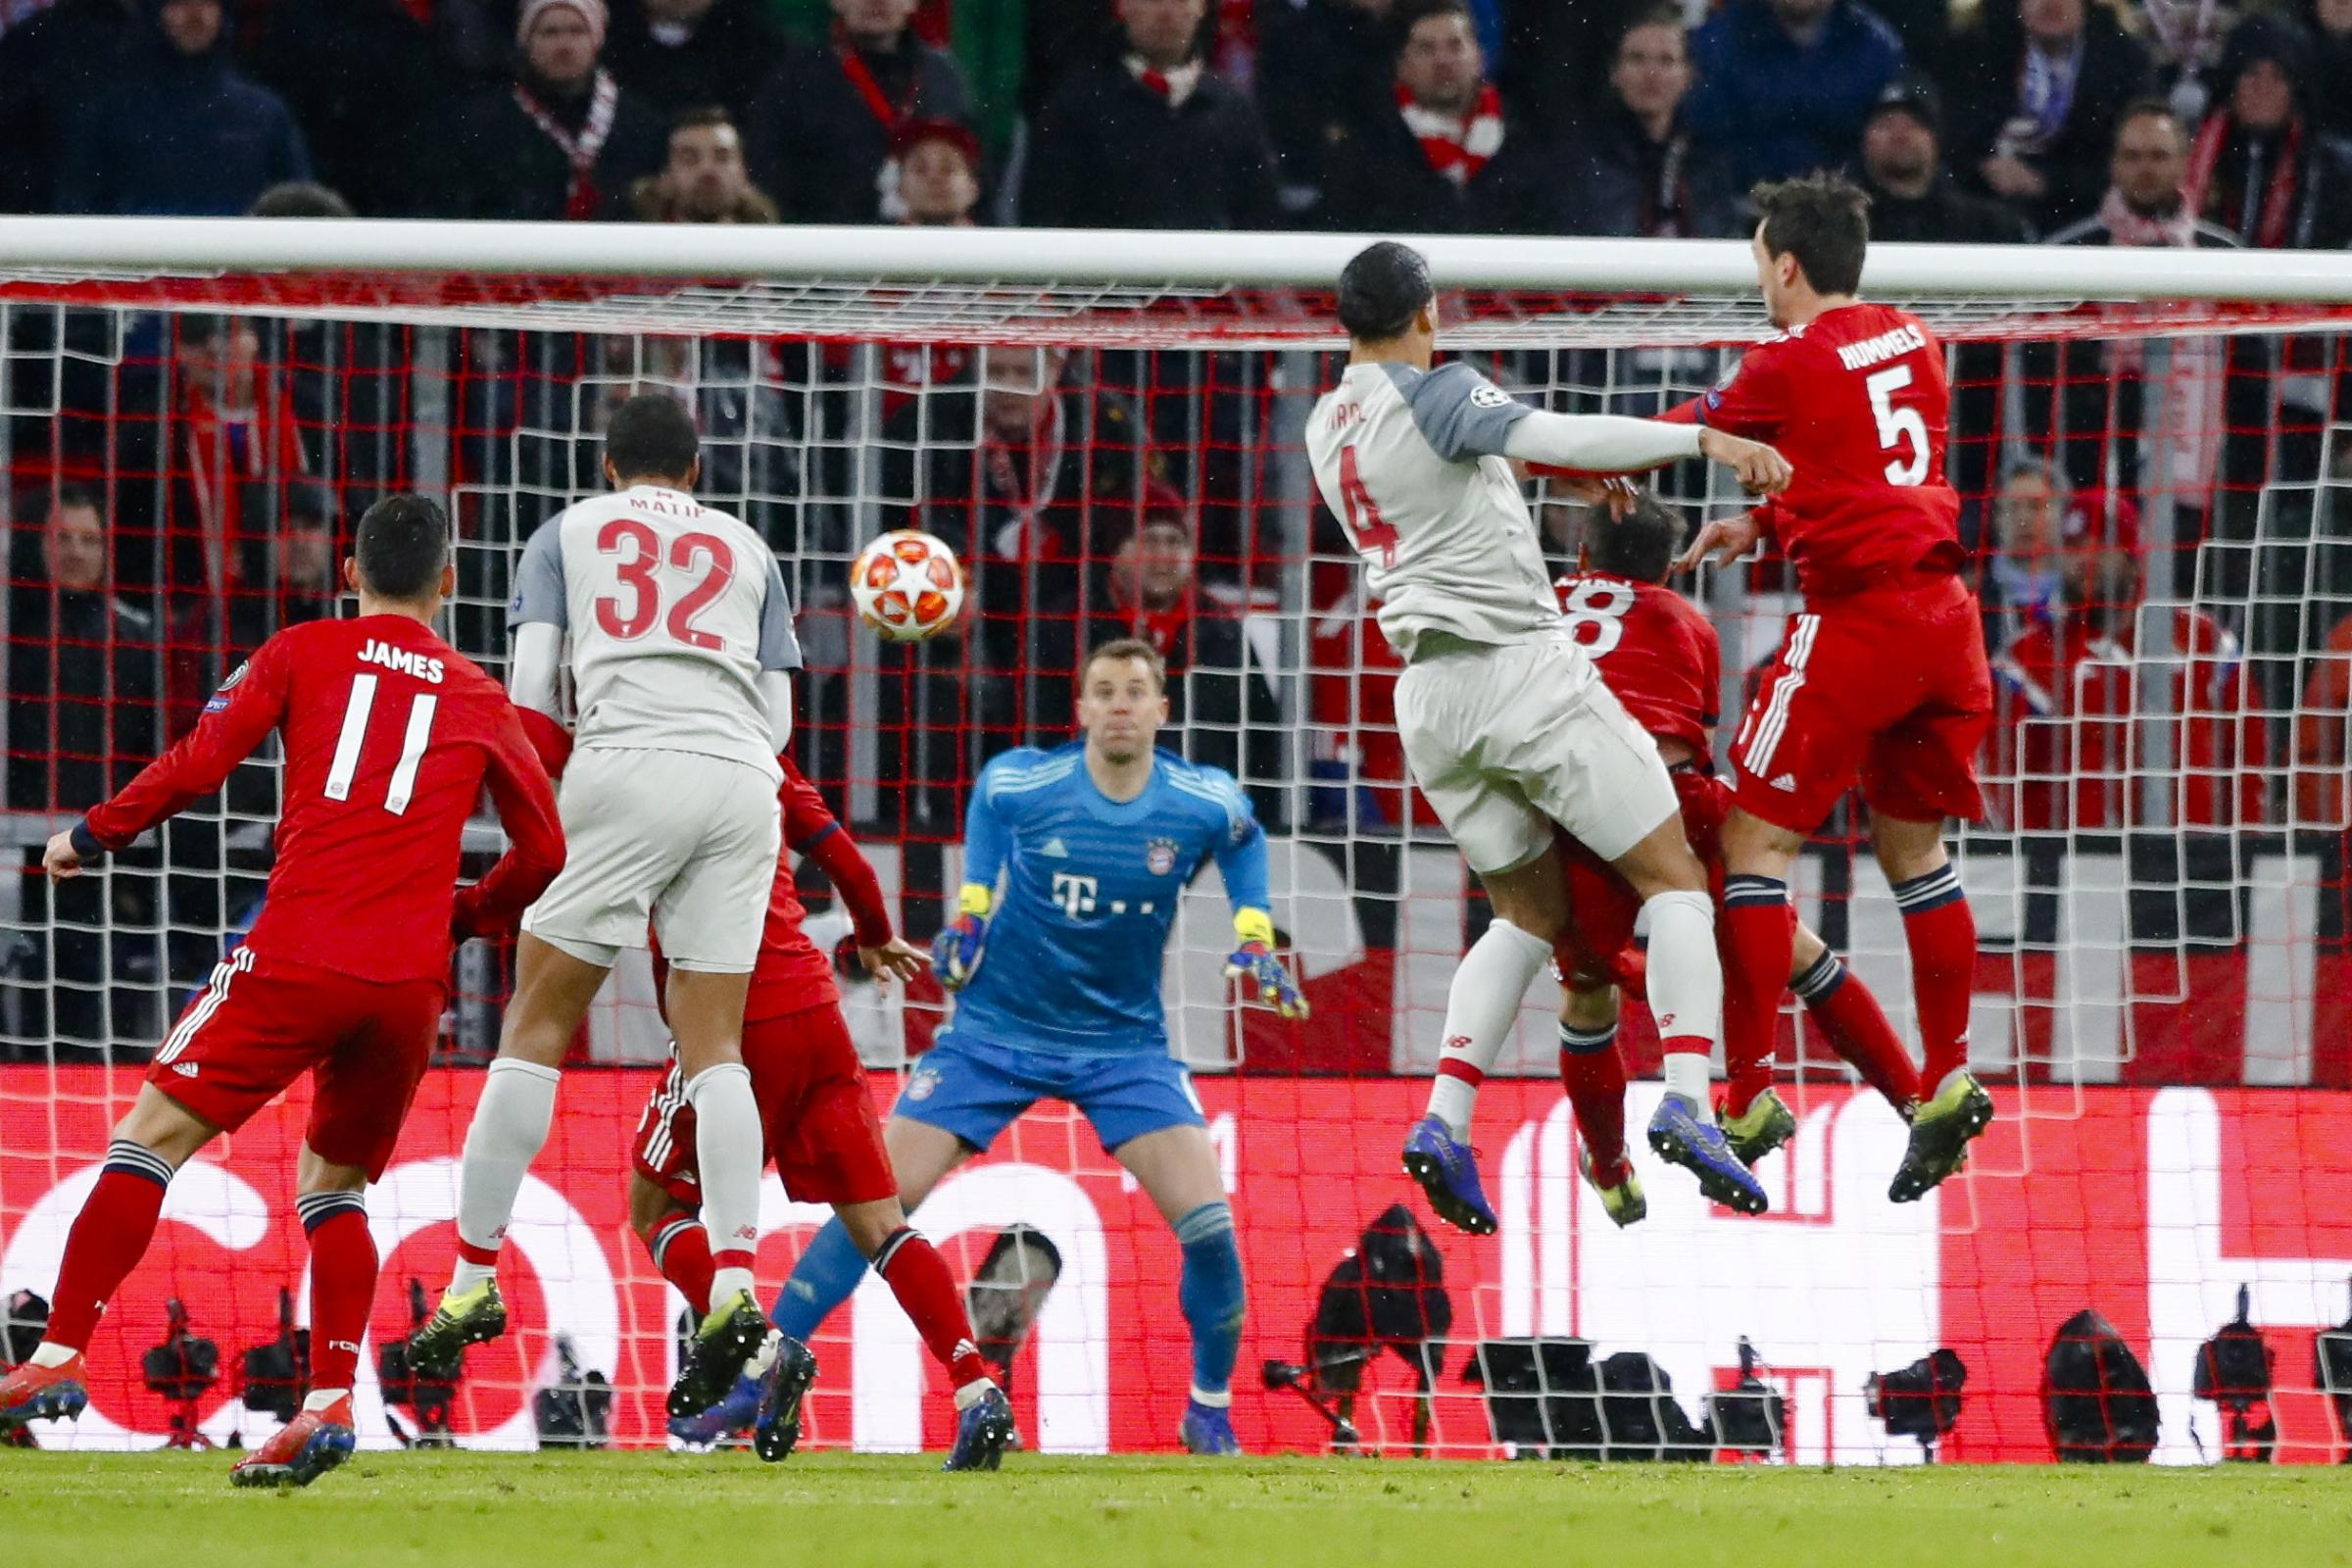 Virgil Van Dijk, centre right, scores for Liverpool against Bayern Munich